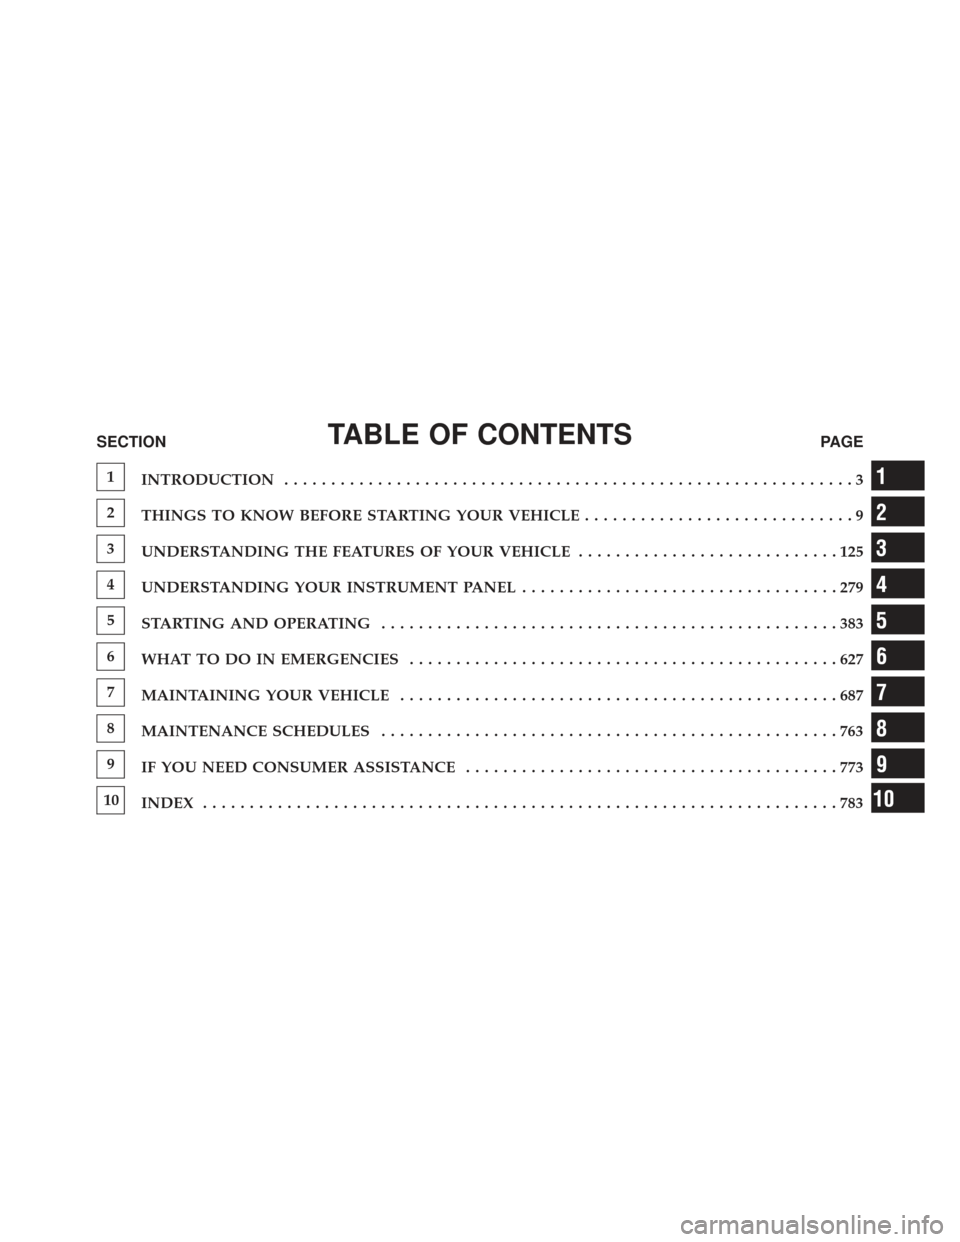 Ram 1500 2014  Owners Manual TABLE OF CONTENTSSECTIONPAGE 1 INTRODUCTION .............................................................3 2 THINGS TO KNOW BEFORE STARTING YOUR VEHICLE .............................9 3 UNDERSTANDING